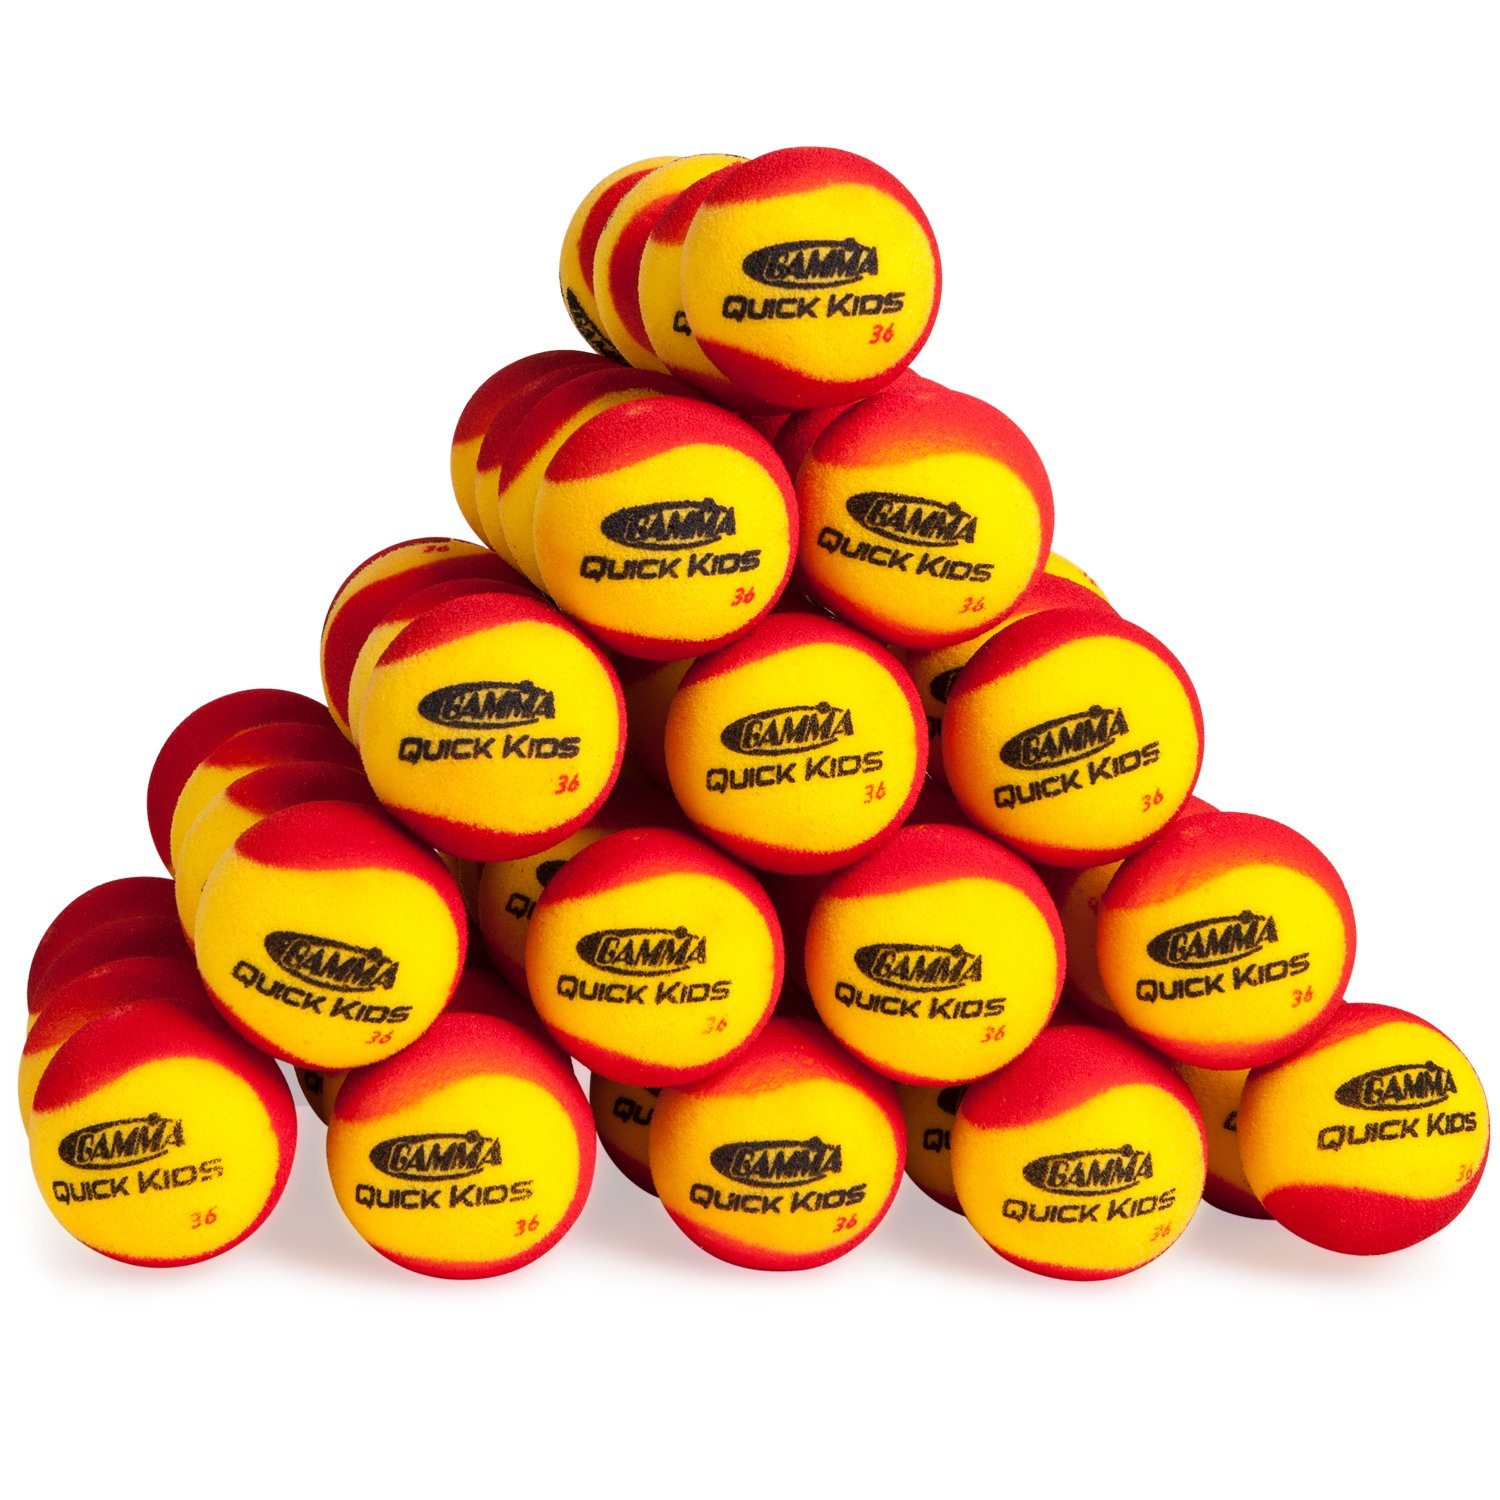 Gamma Sports Quick Kids 36 Foam Low Bounce Training and Practice Tennis Balls for Kids and Beginners, 75% Slower than Standard Tennis Balls (Designed for 36' Tennis Courts, 60 Pack, Yellow/Red)